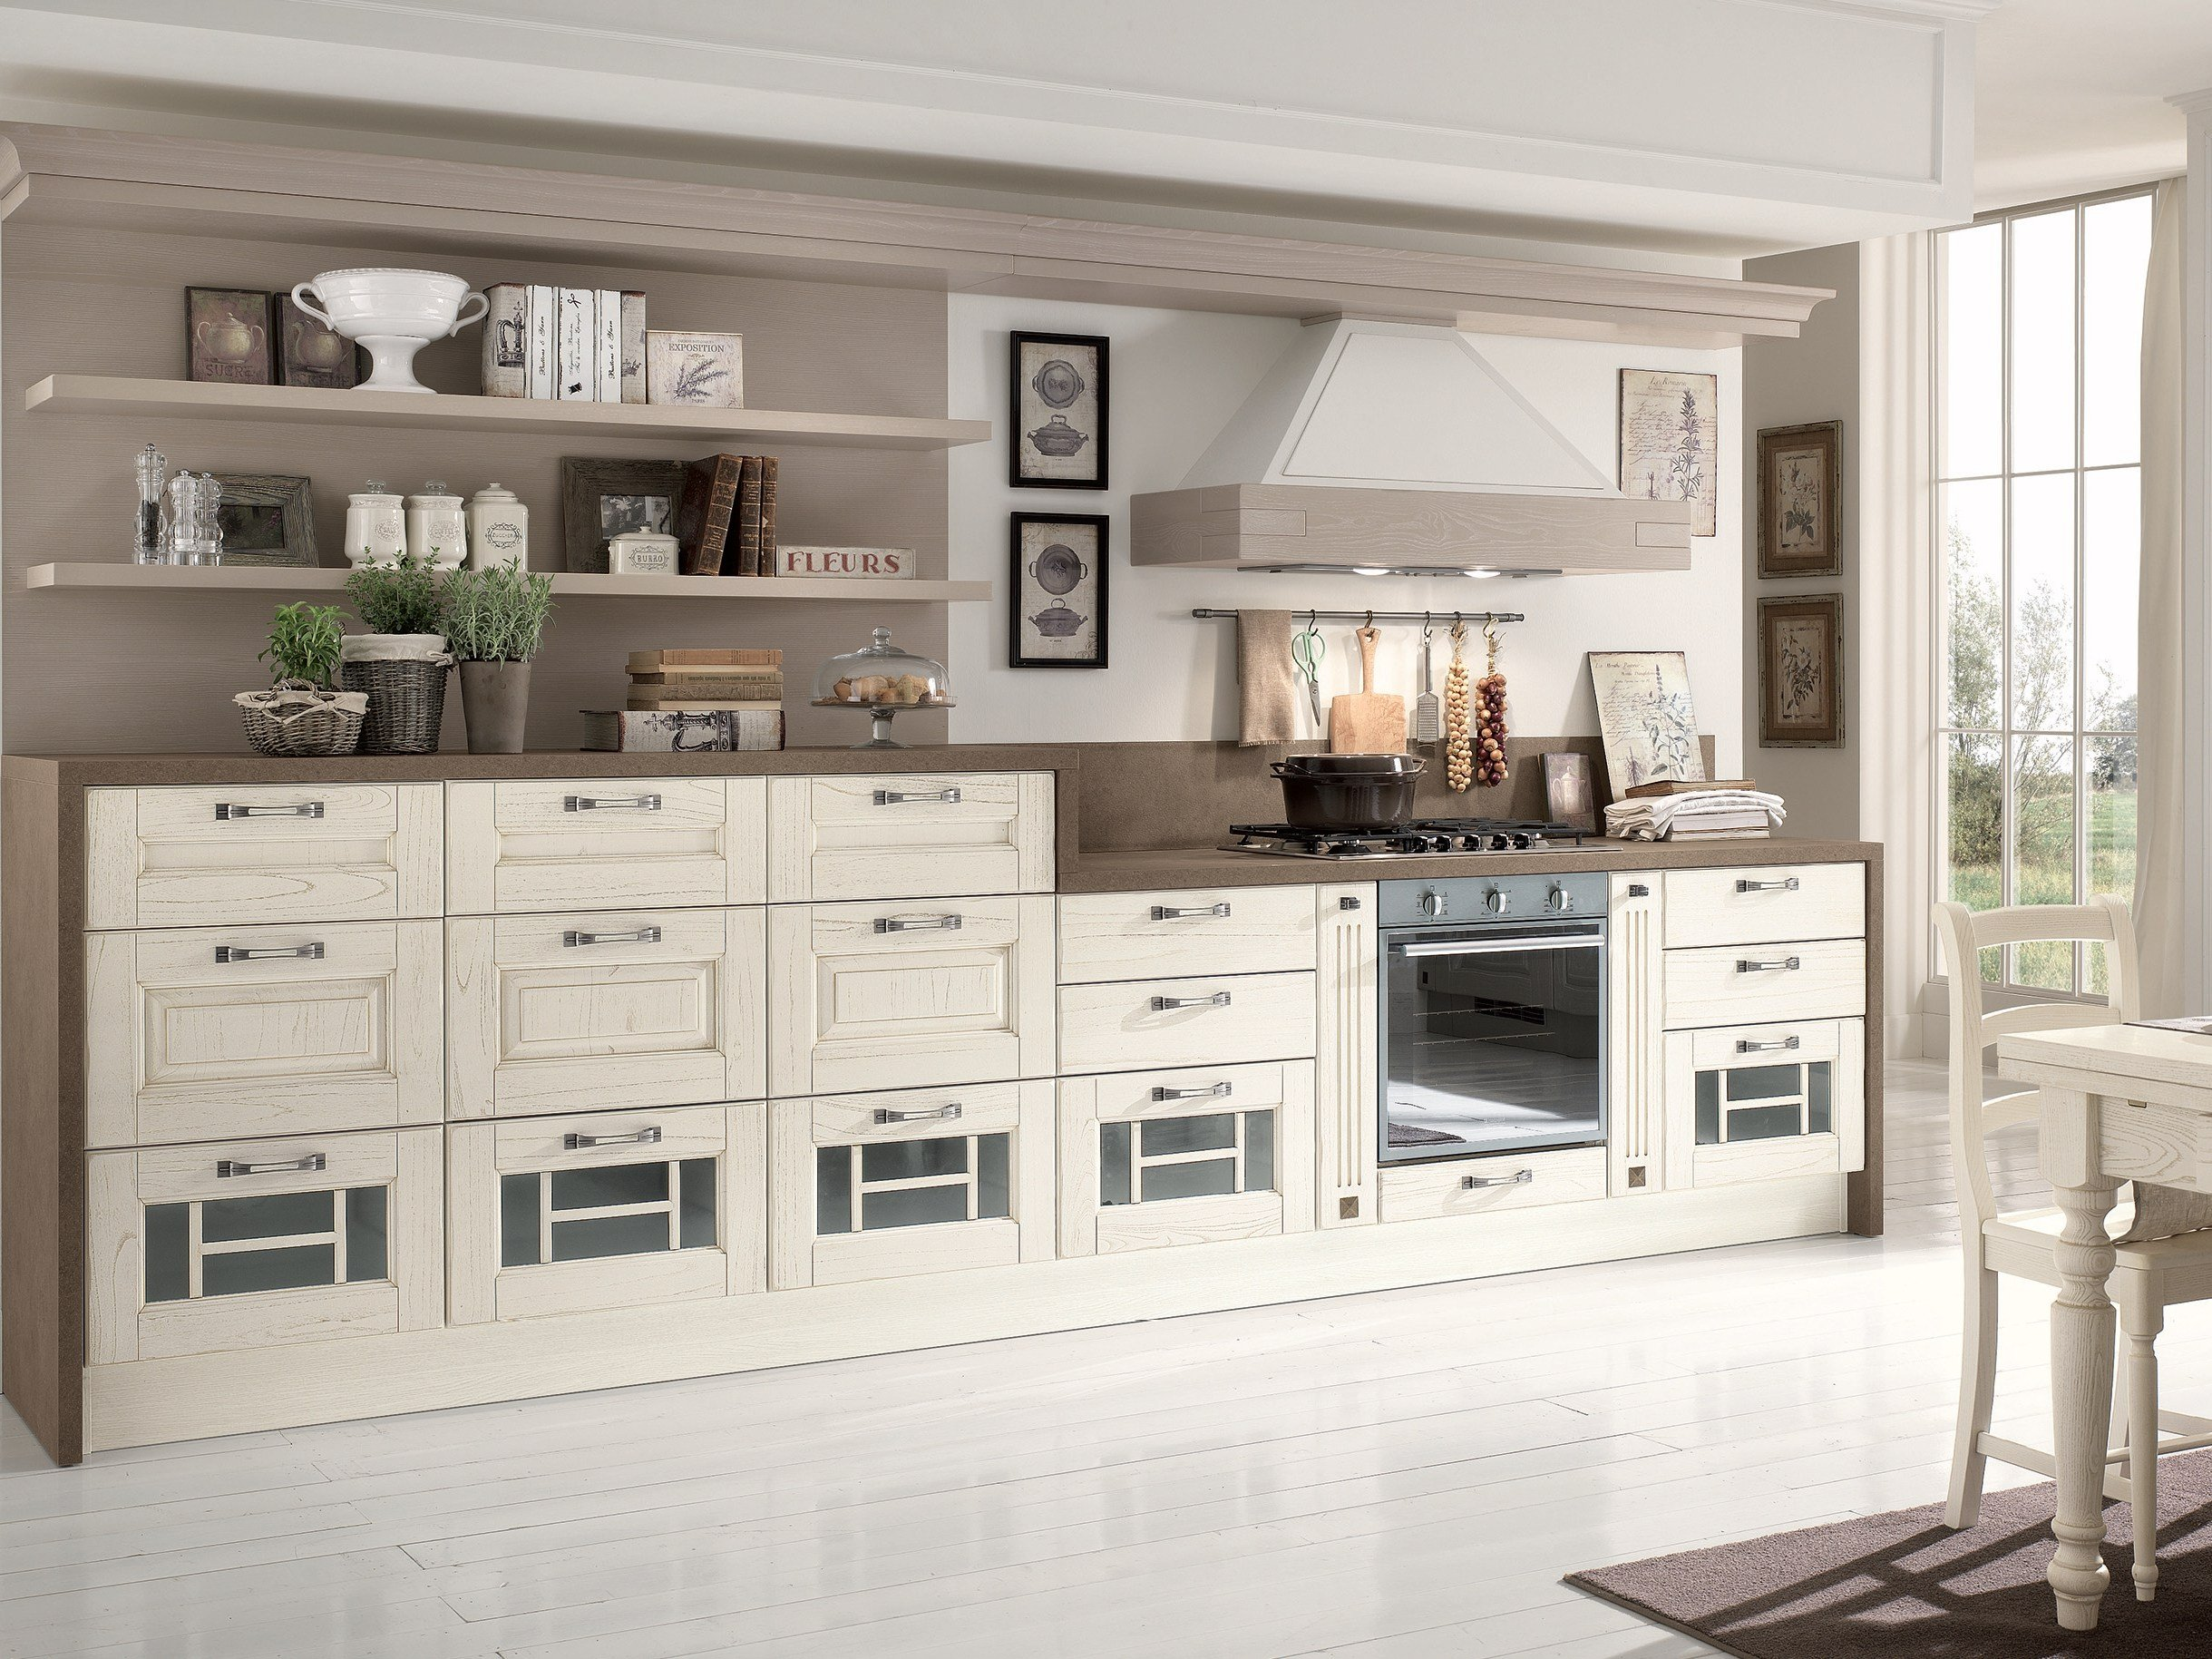 Laura cucina decapata by cucine lube for Occasioni mobili classici